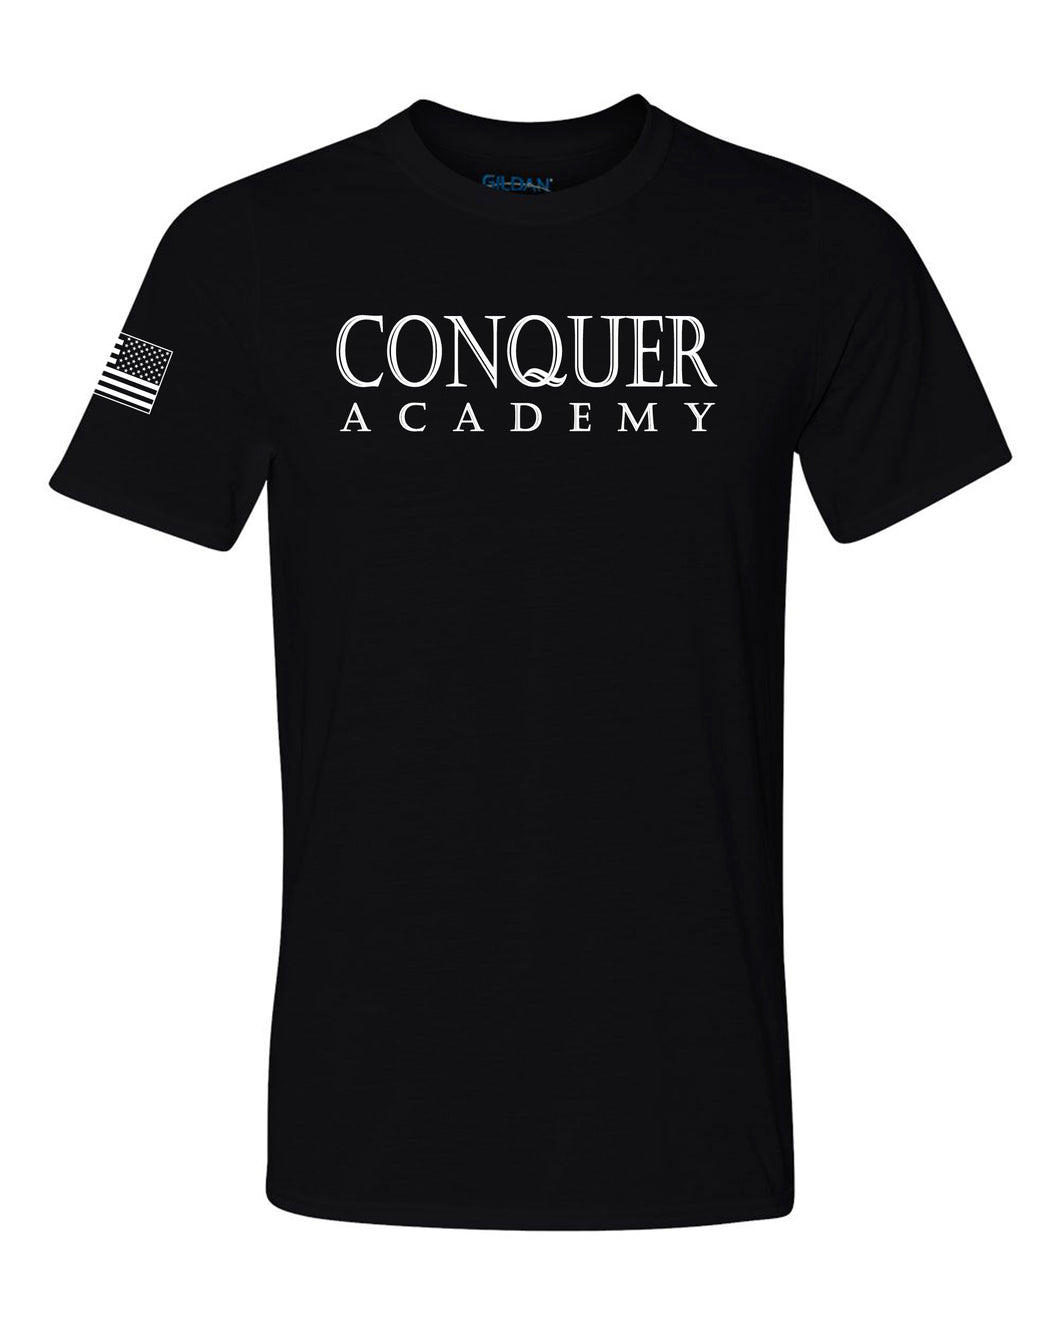 Official Conquer Academy Performance Shirt